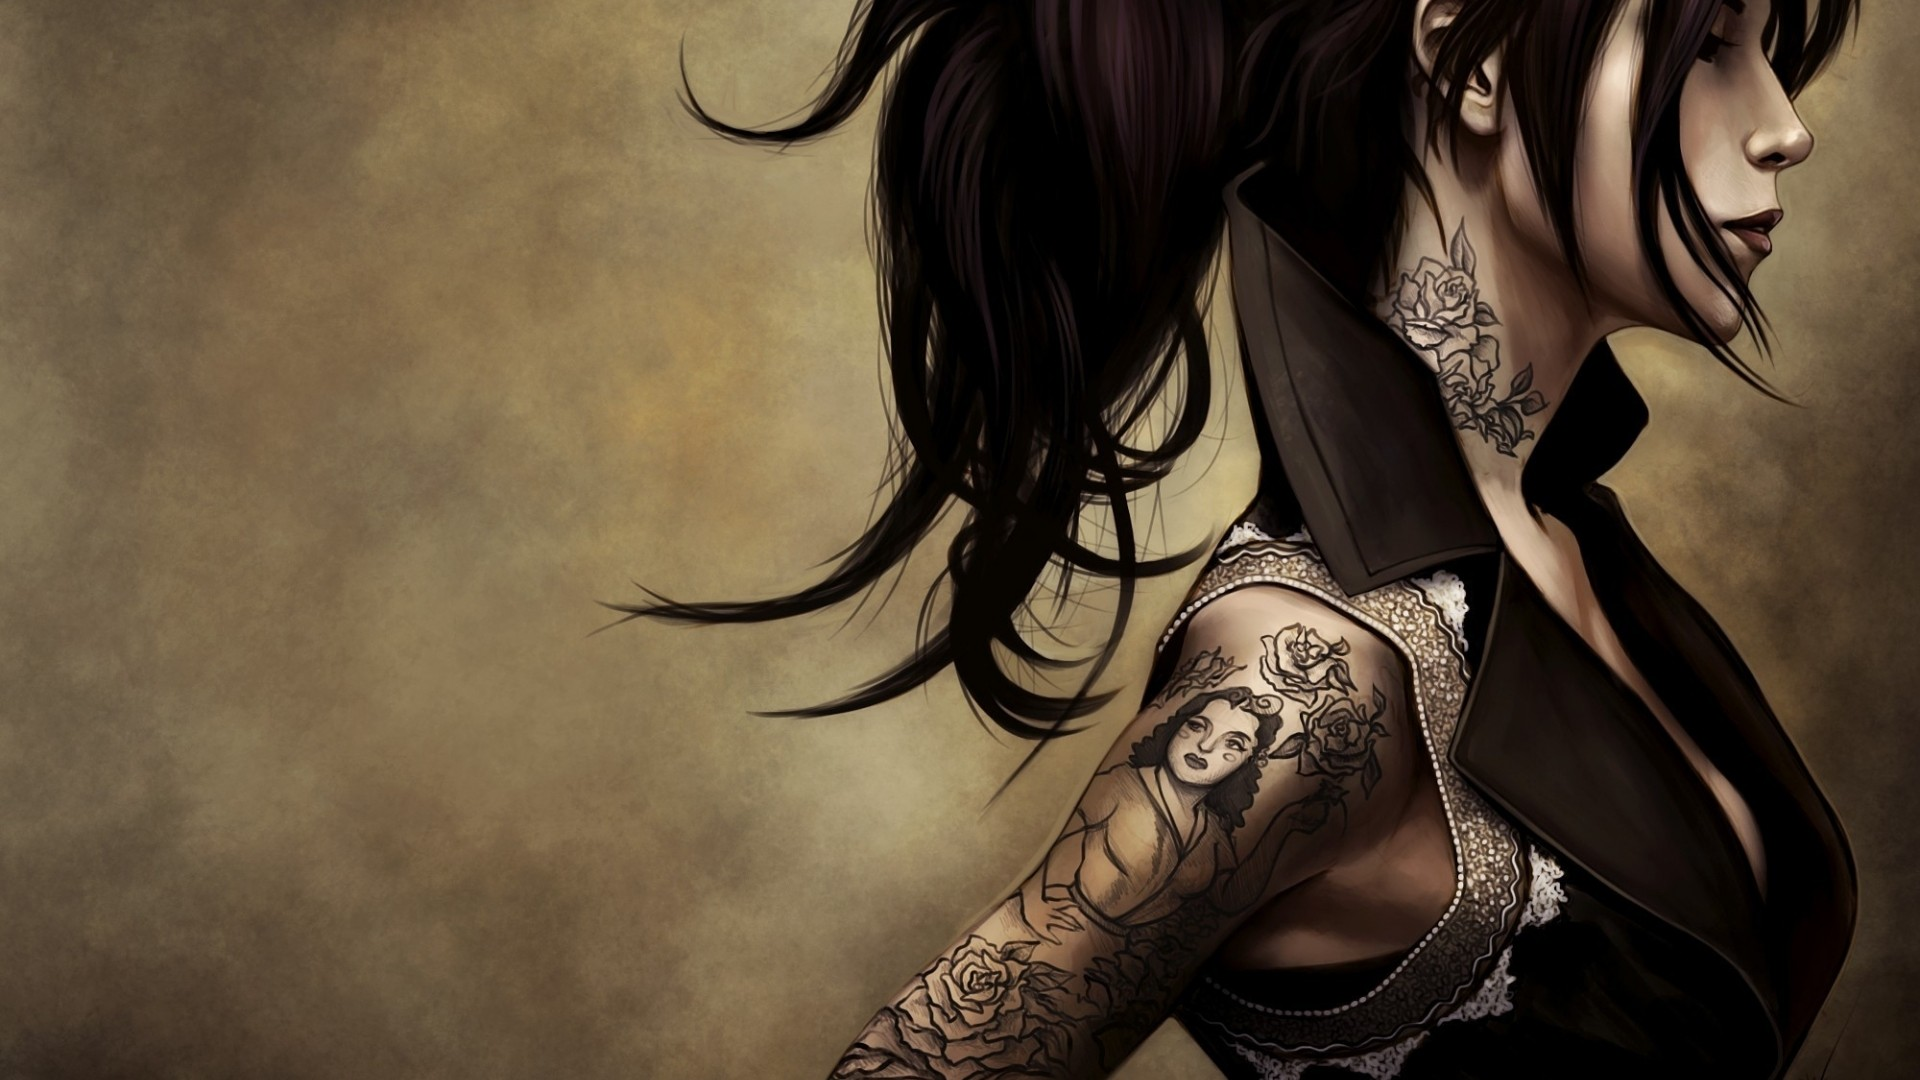 tattoo girl hd wallpaper - photo #40